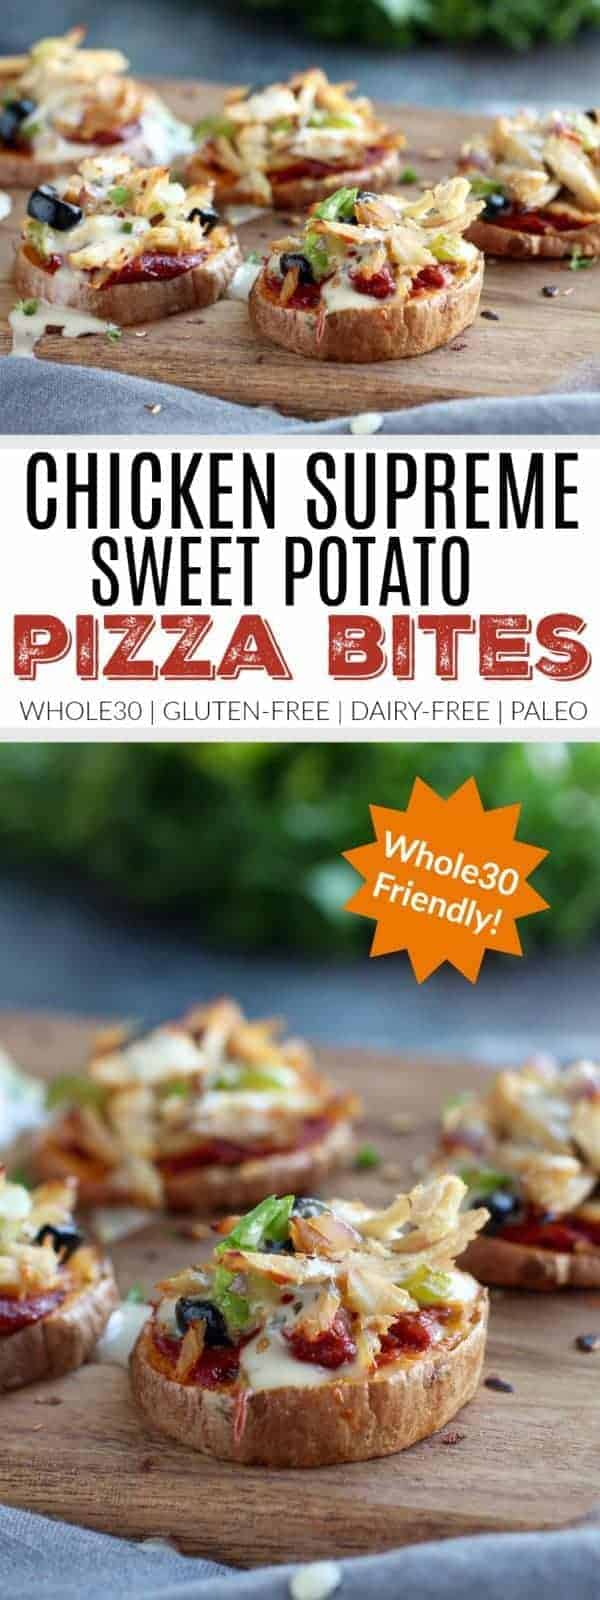 Chicken Supreme Sweet Potato Pizza Bites | pizza inspired recipes | healthy pizza alternatives | easy dinner recipes | healthy dinner recipes | Whole30 recipe ideas | Whole30 approved recipes | Whole30 dinner ideas | gluten free recipes | gluten free pizza recipes | healthy recipes using sweet potatoes | paleo dinner recipes | paleo friendly meals || The Real Food Dietitians